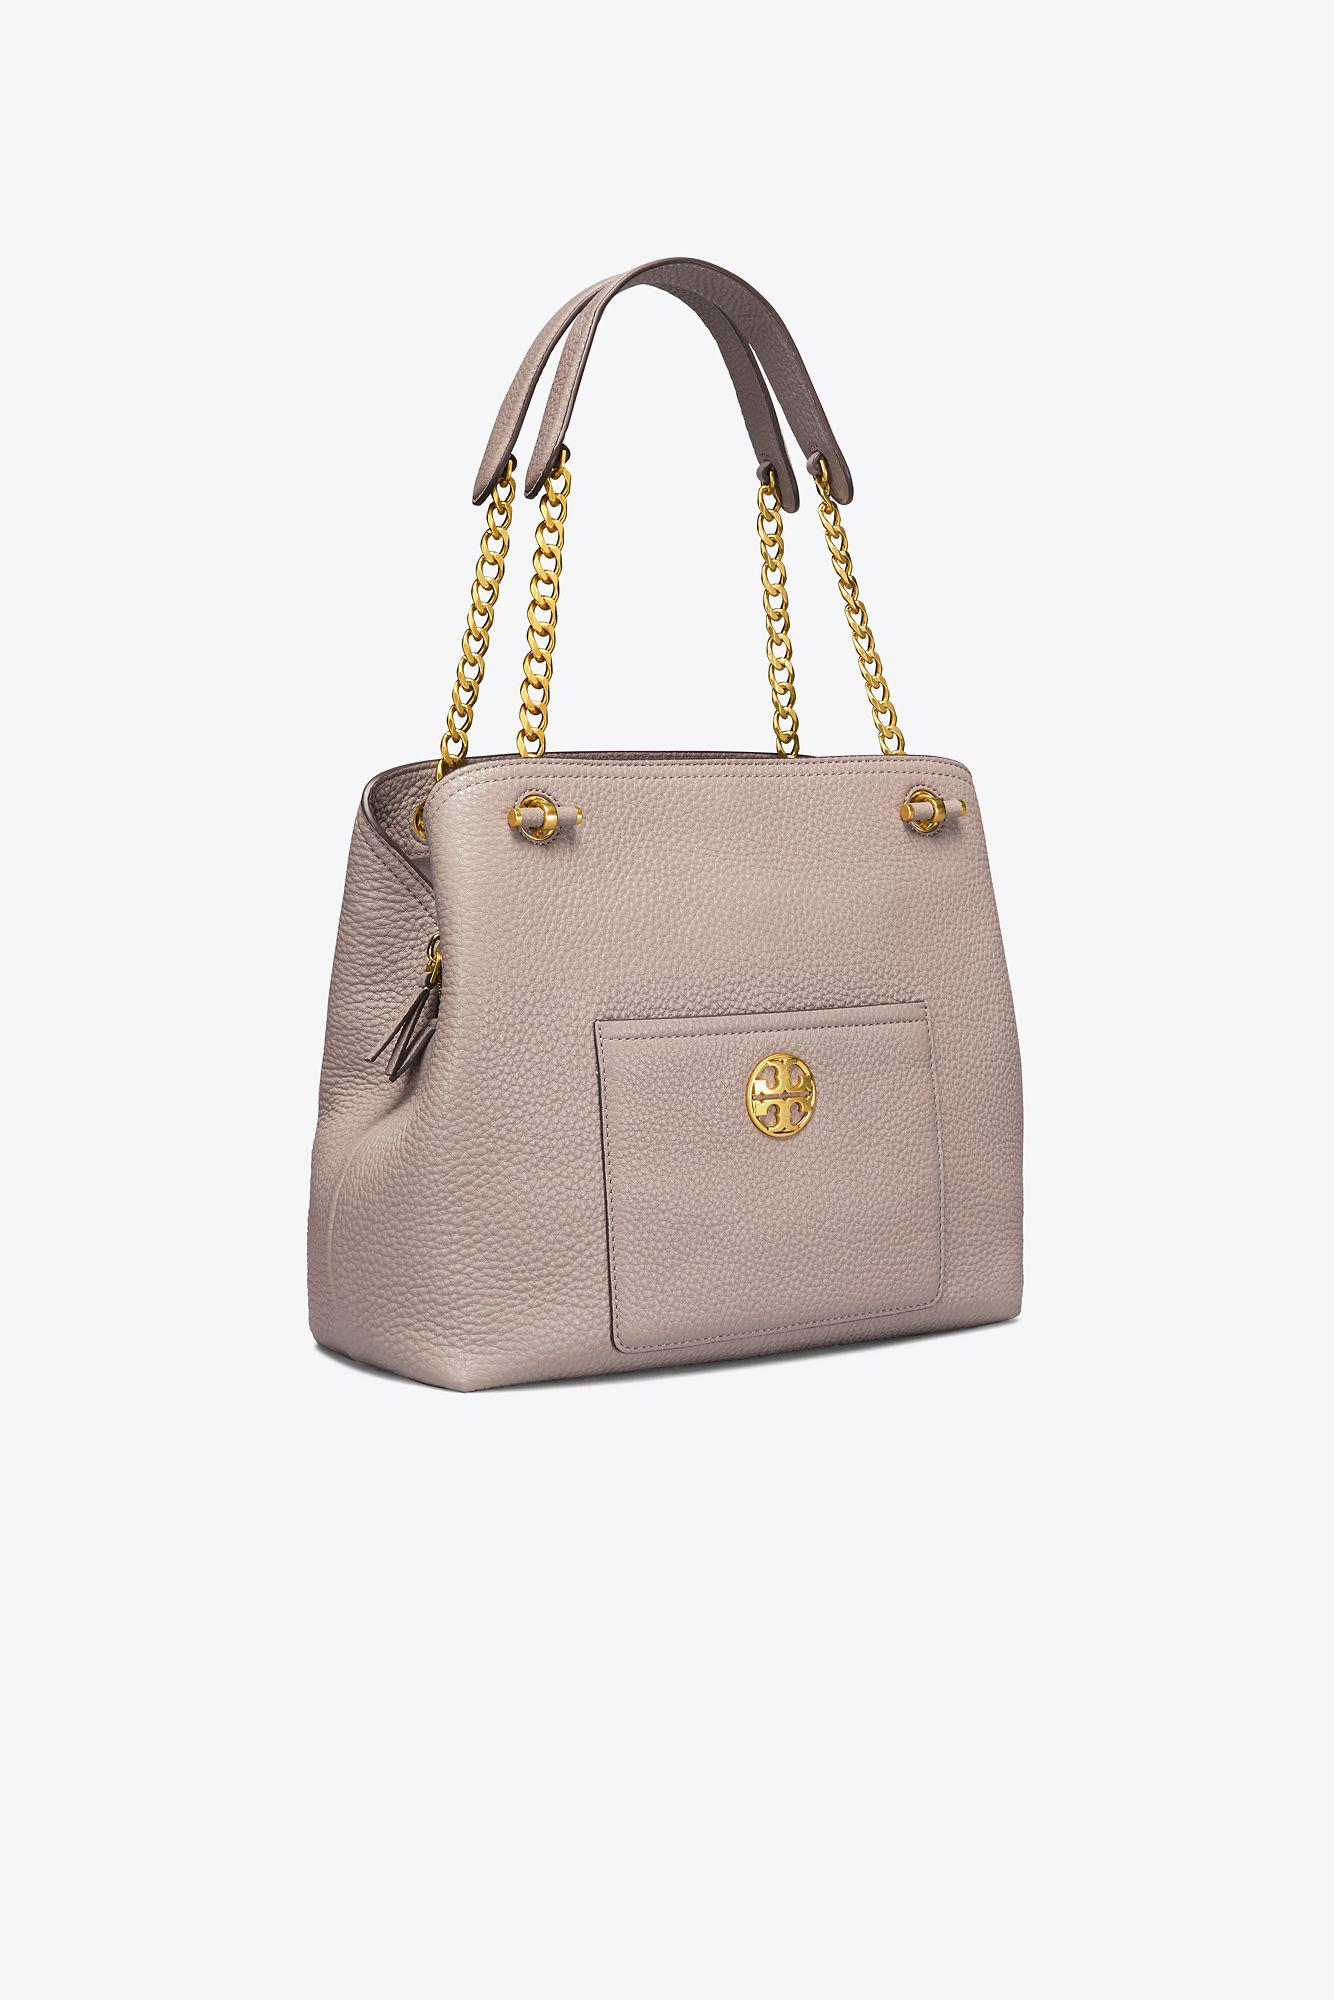 be149ac7e338 Tory Burch Chelsea Small Slouchy Tote - Lyst